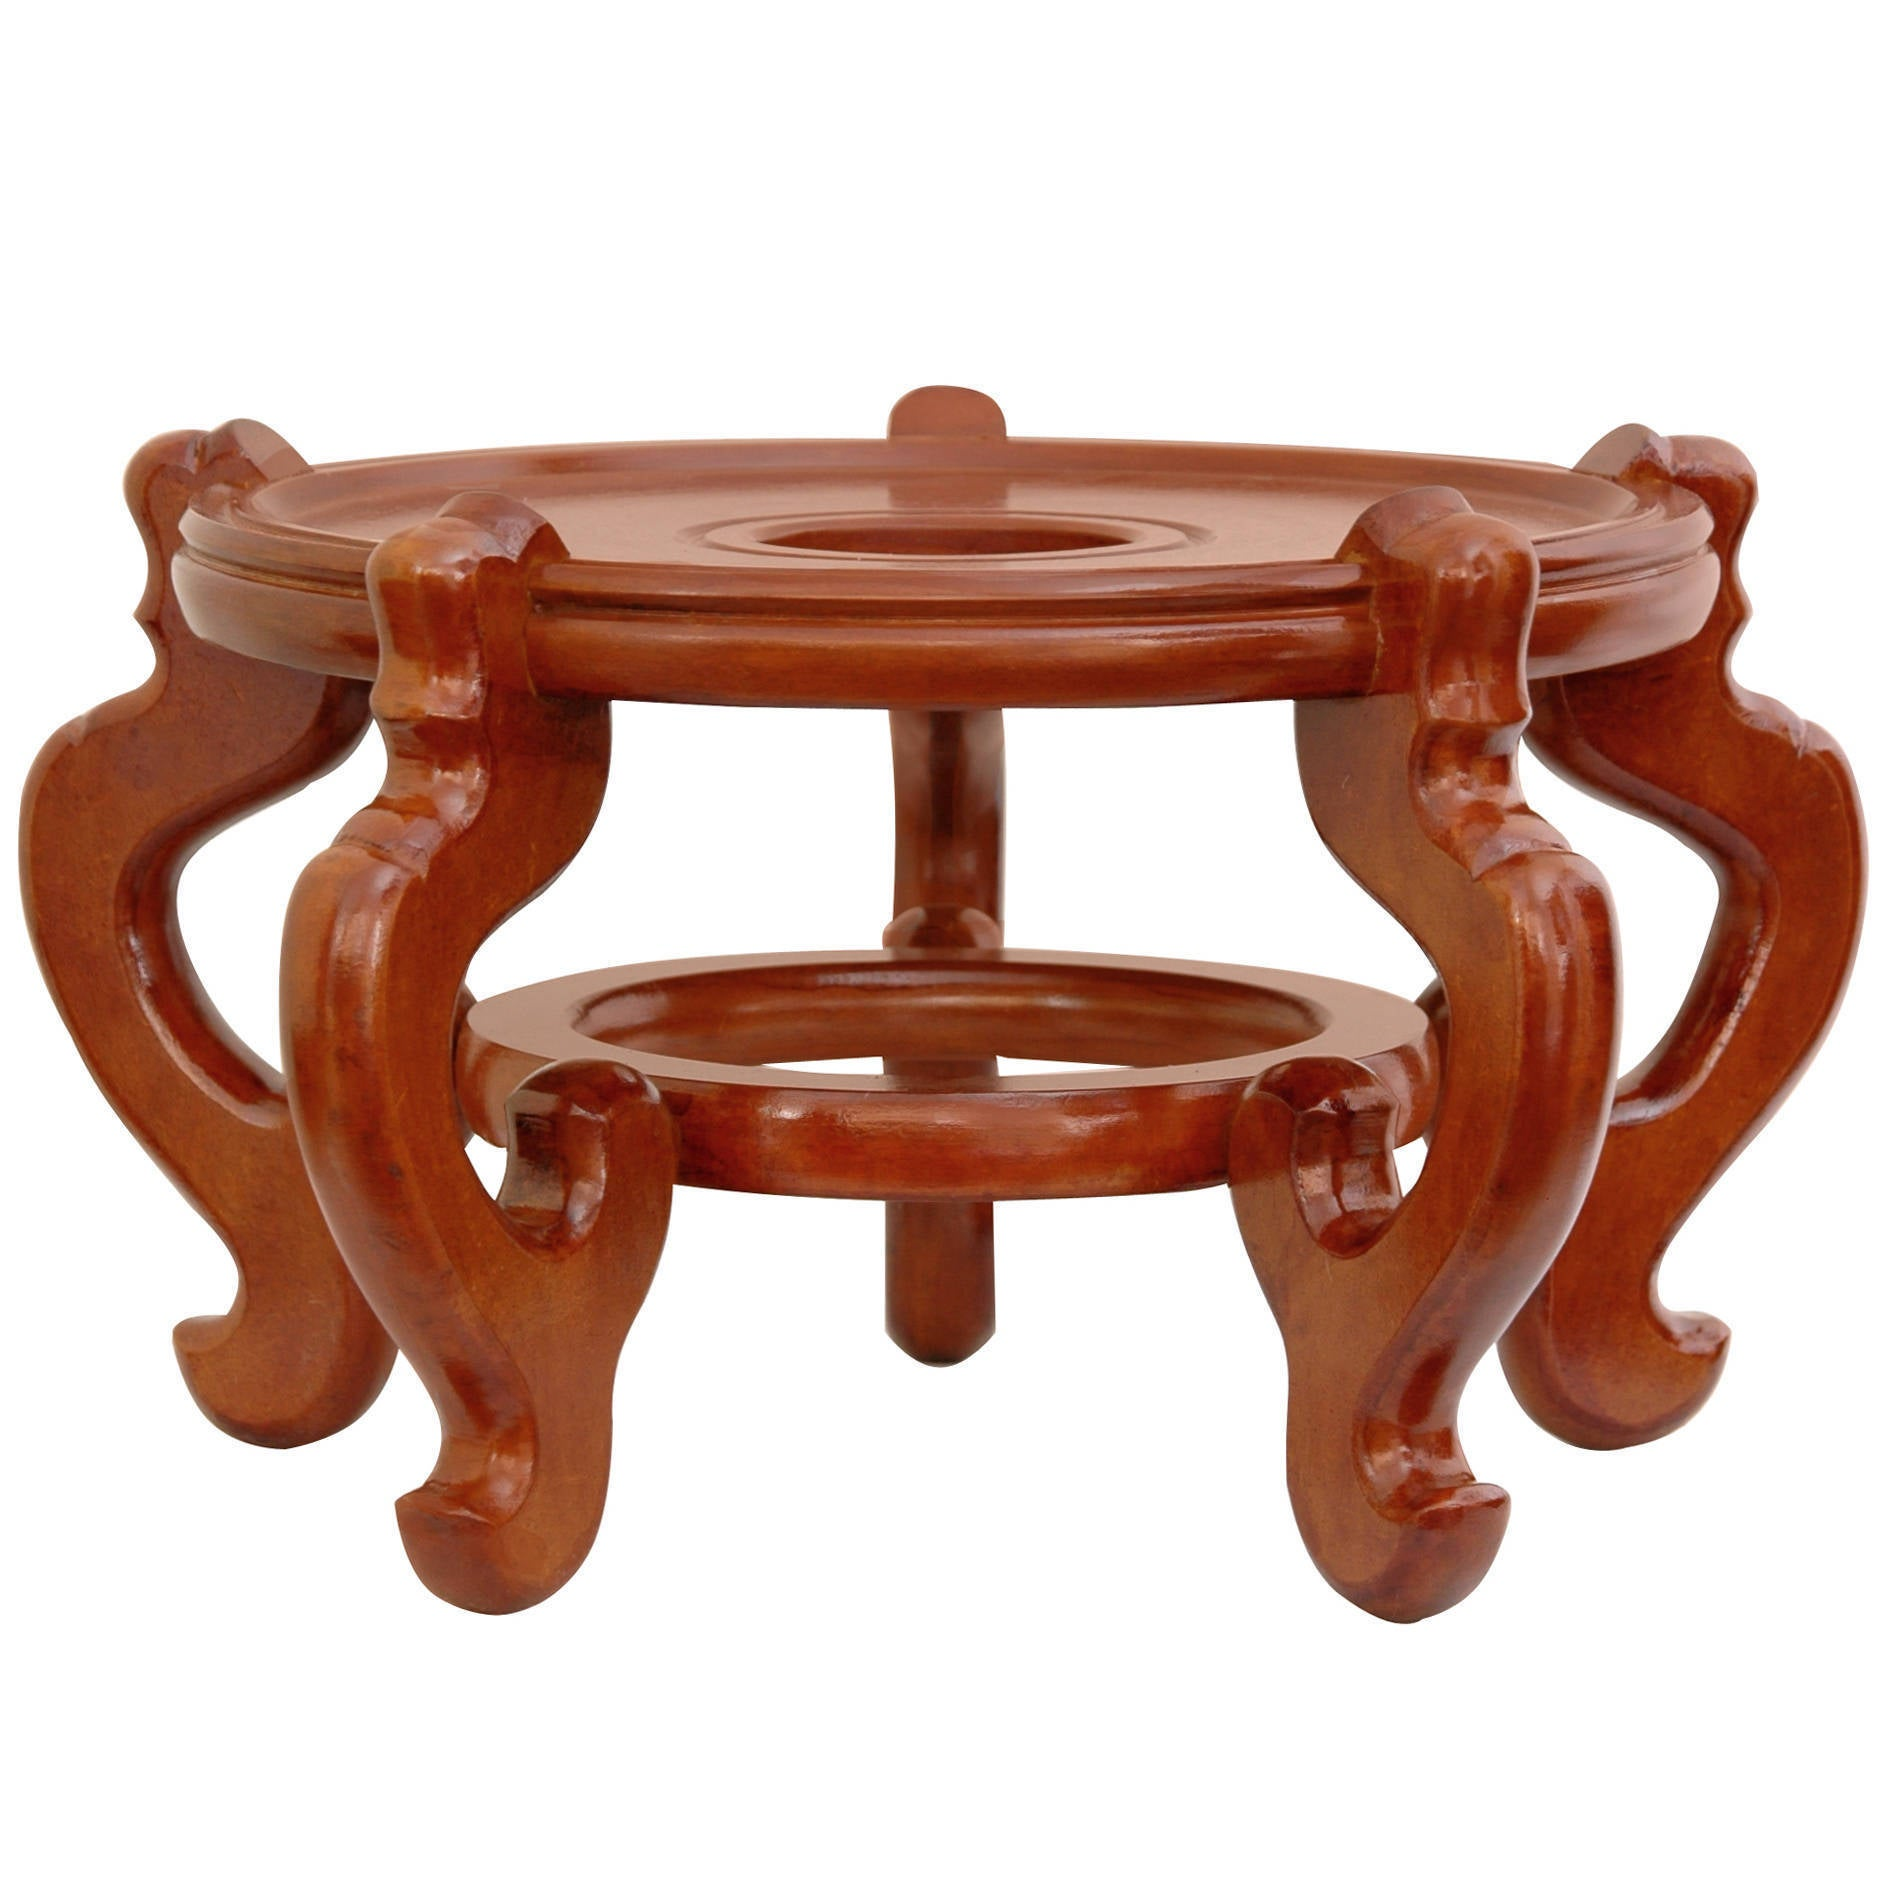 "Rosewood 9-inch Honey Fishbowl Stand (China) (9"" Rosewood..."